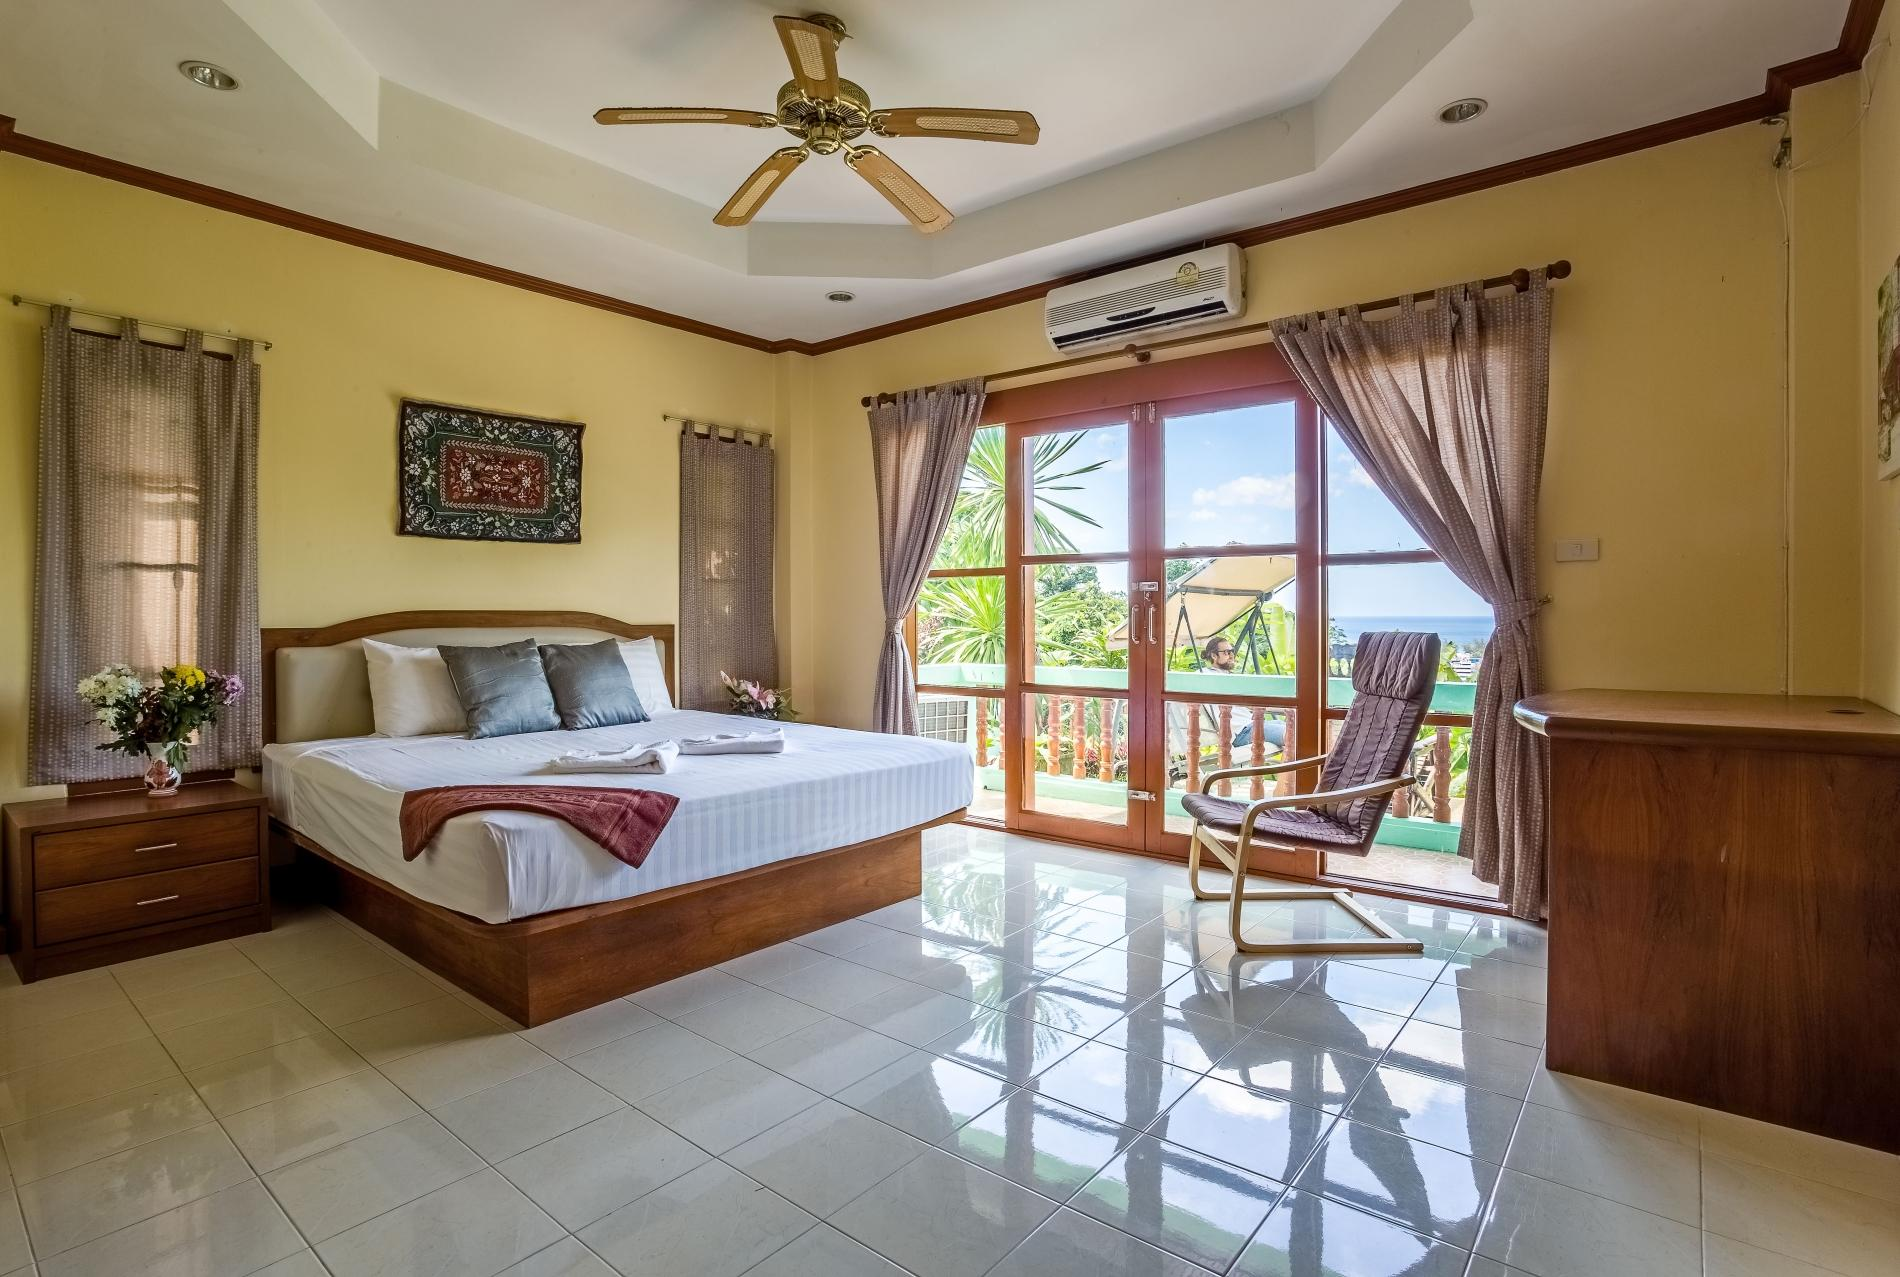 Apartment Vista Villa 1 - Seaview private pool villa in Patong for 9 people  photo 18363634